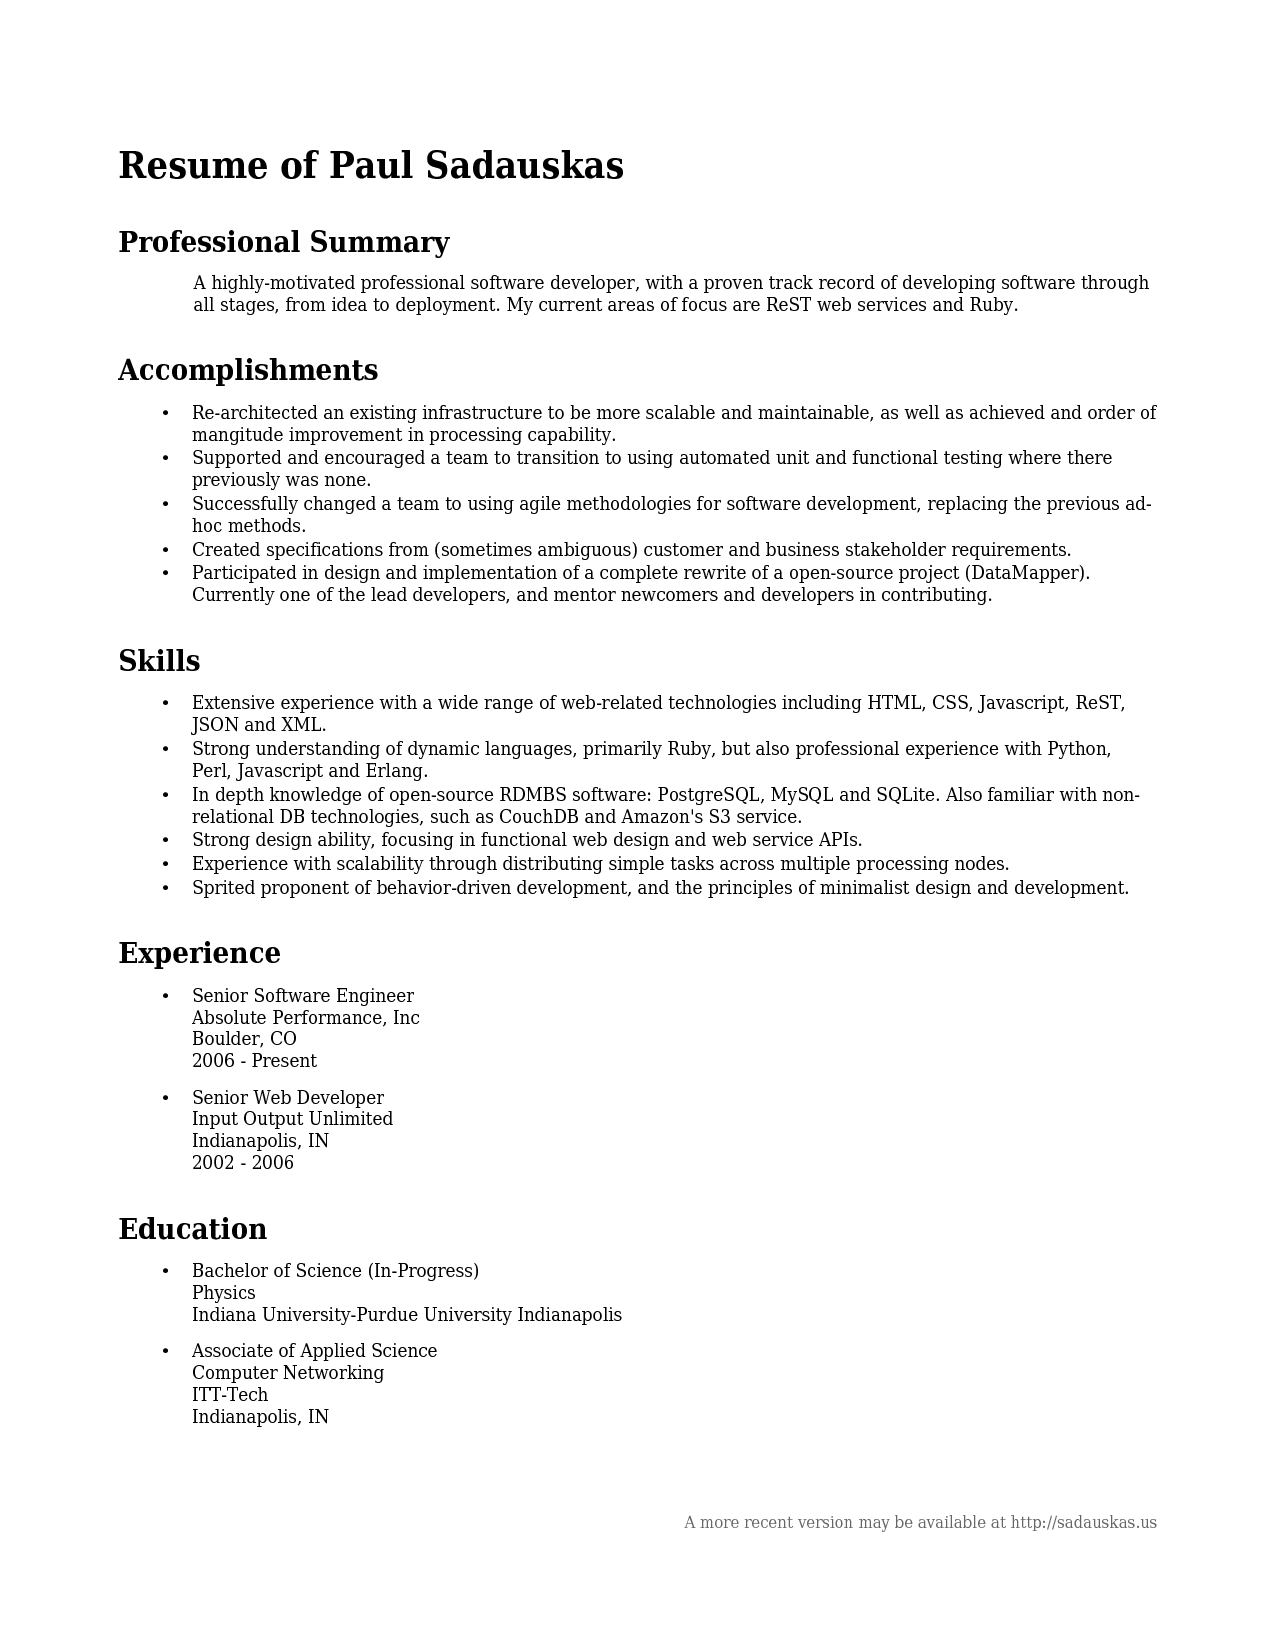 Professional Resume Summary 2016  Samplebusinessresume. Cover Letter Nursing Clinical Instructor. Resume Of A Science Teacher In India. Curriculum Vitae Francais Europeen. Resume Sample In Spanish. Resume Builder Linkedin Free. Letter Of Intent Sample Proposal. Curriculum Vitae In Spanish. Letterhead Design For Import Export